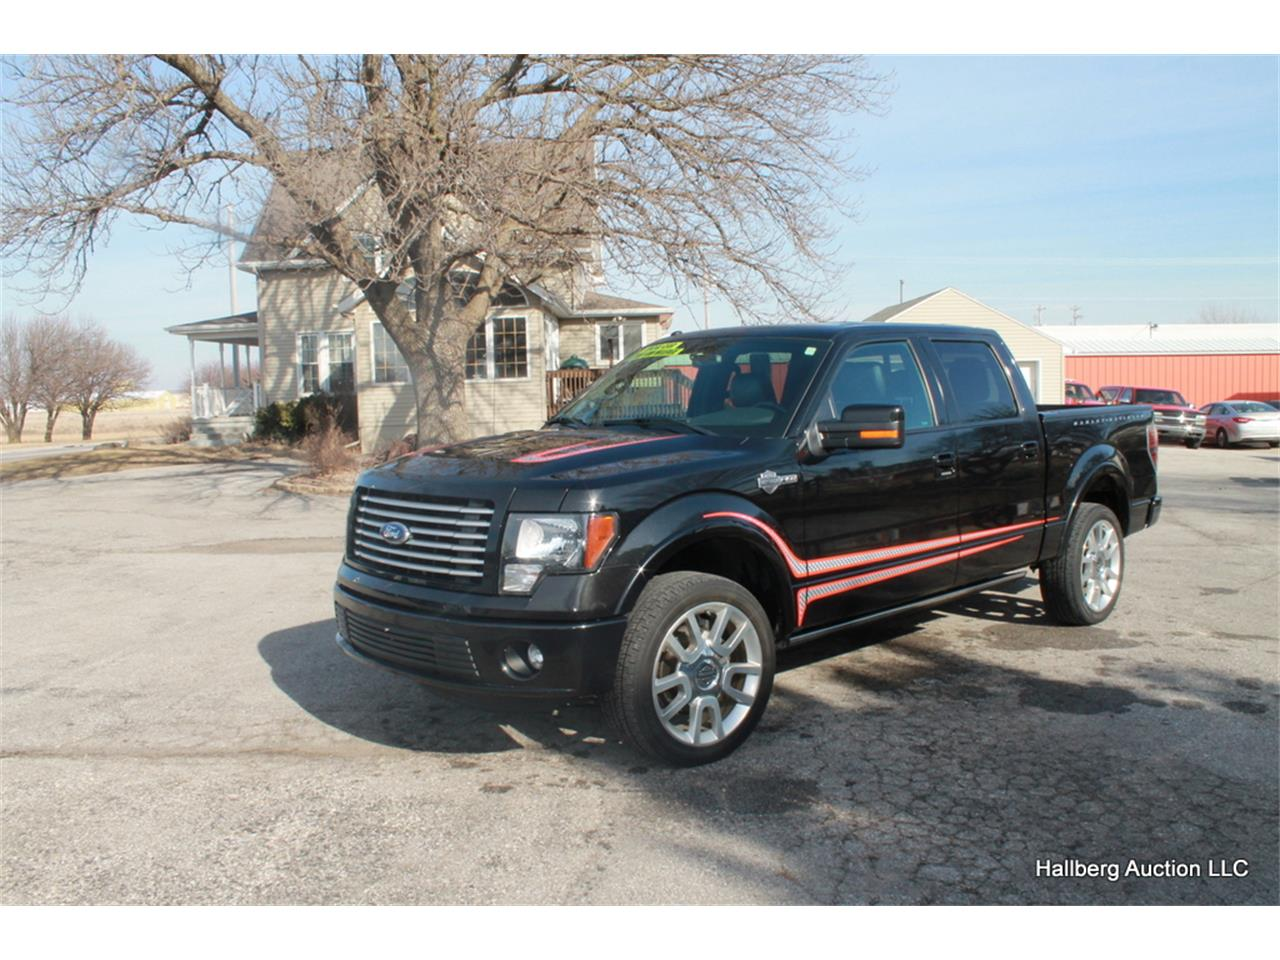 2011 Ford F150 Harley Davidson Edition For Sale Classiccars Com